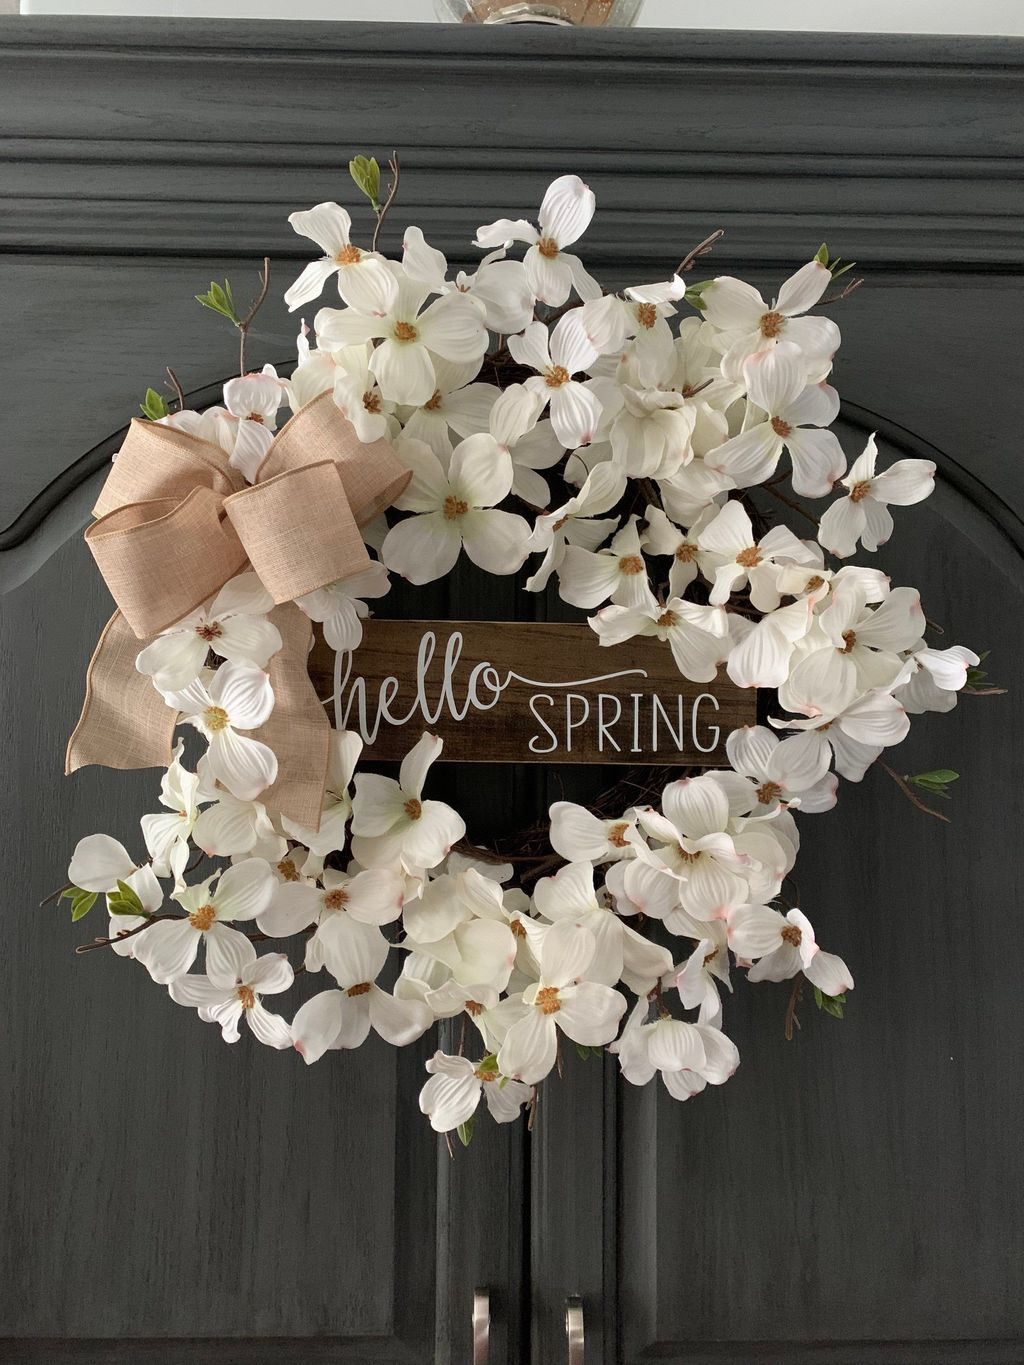 Awesome Spring Wreath Ideas For Front Door Decor 26